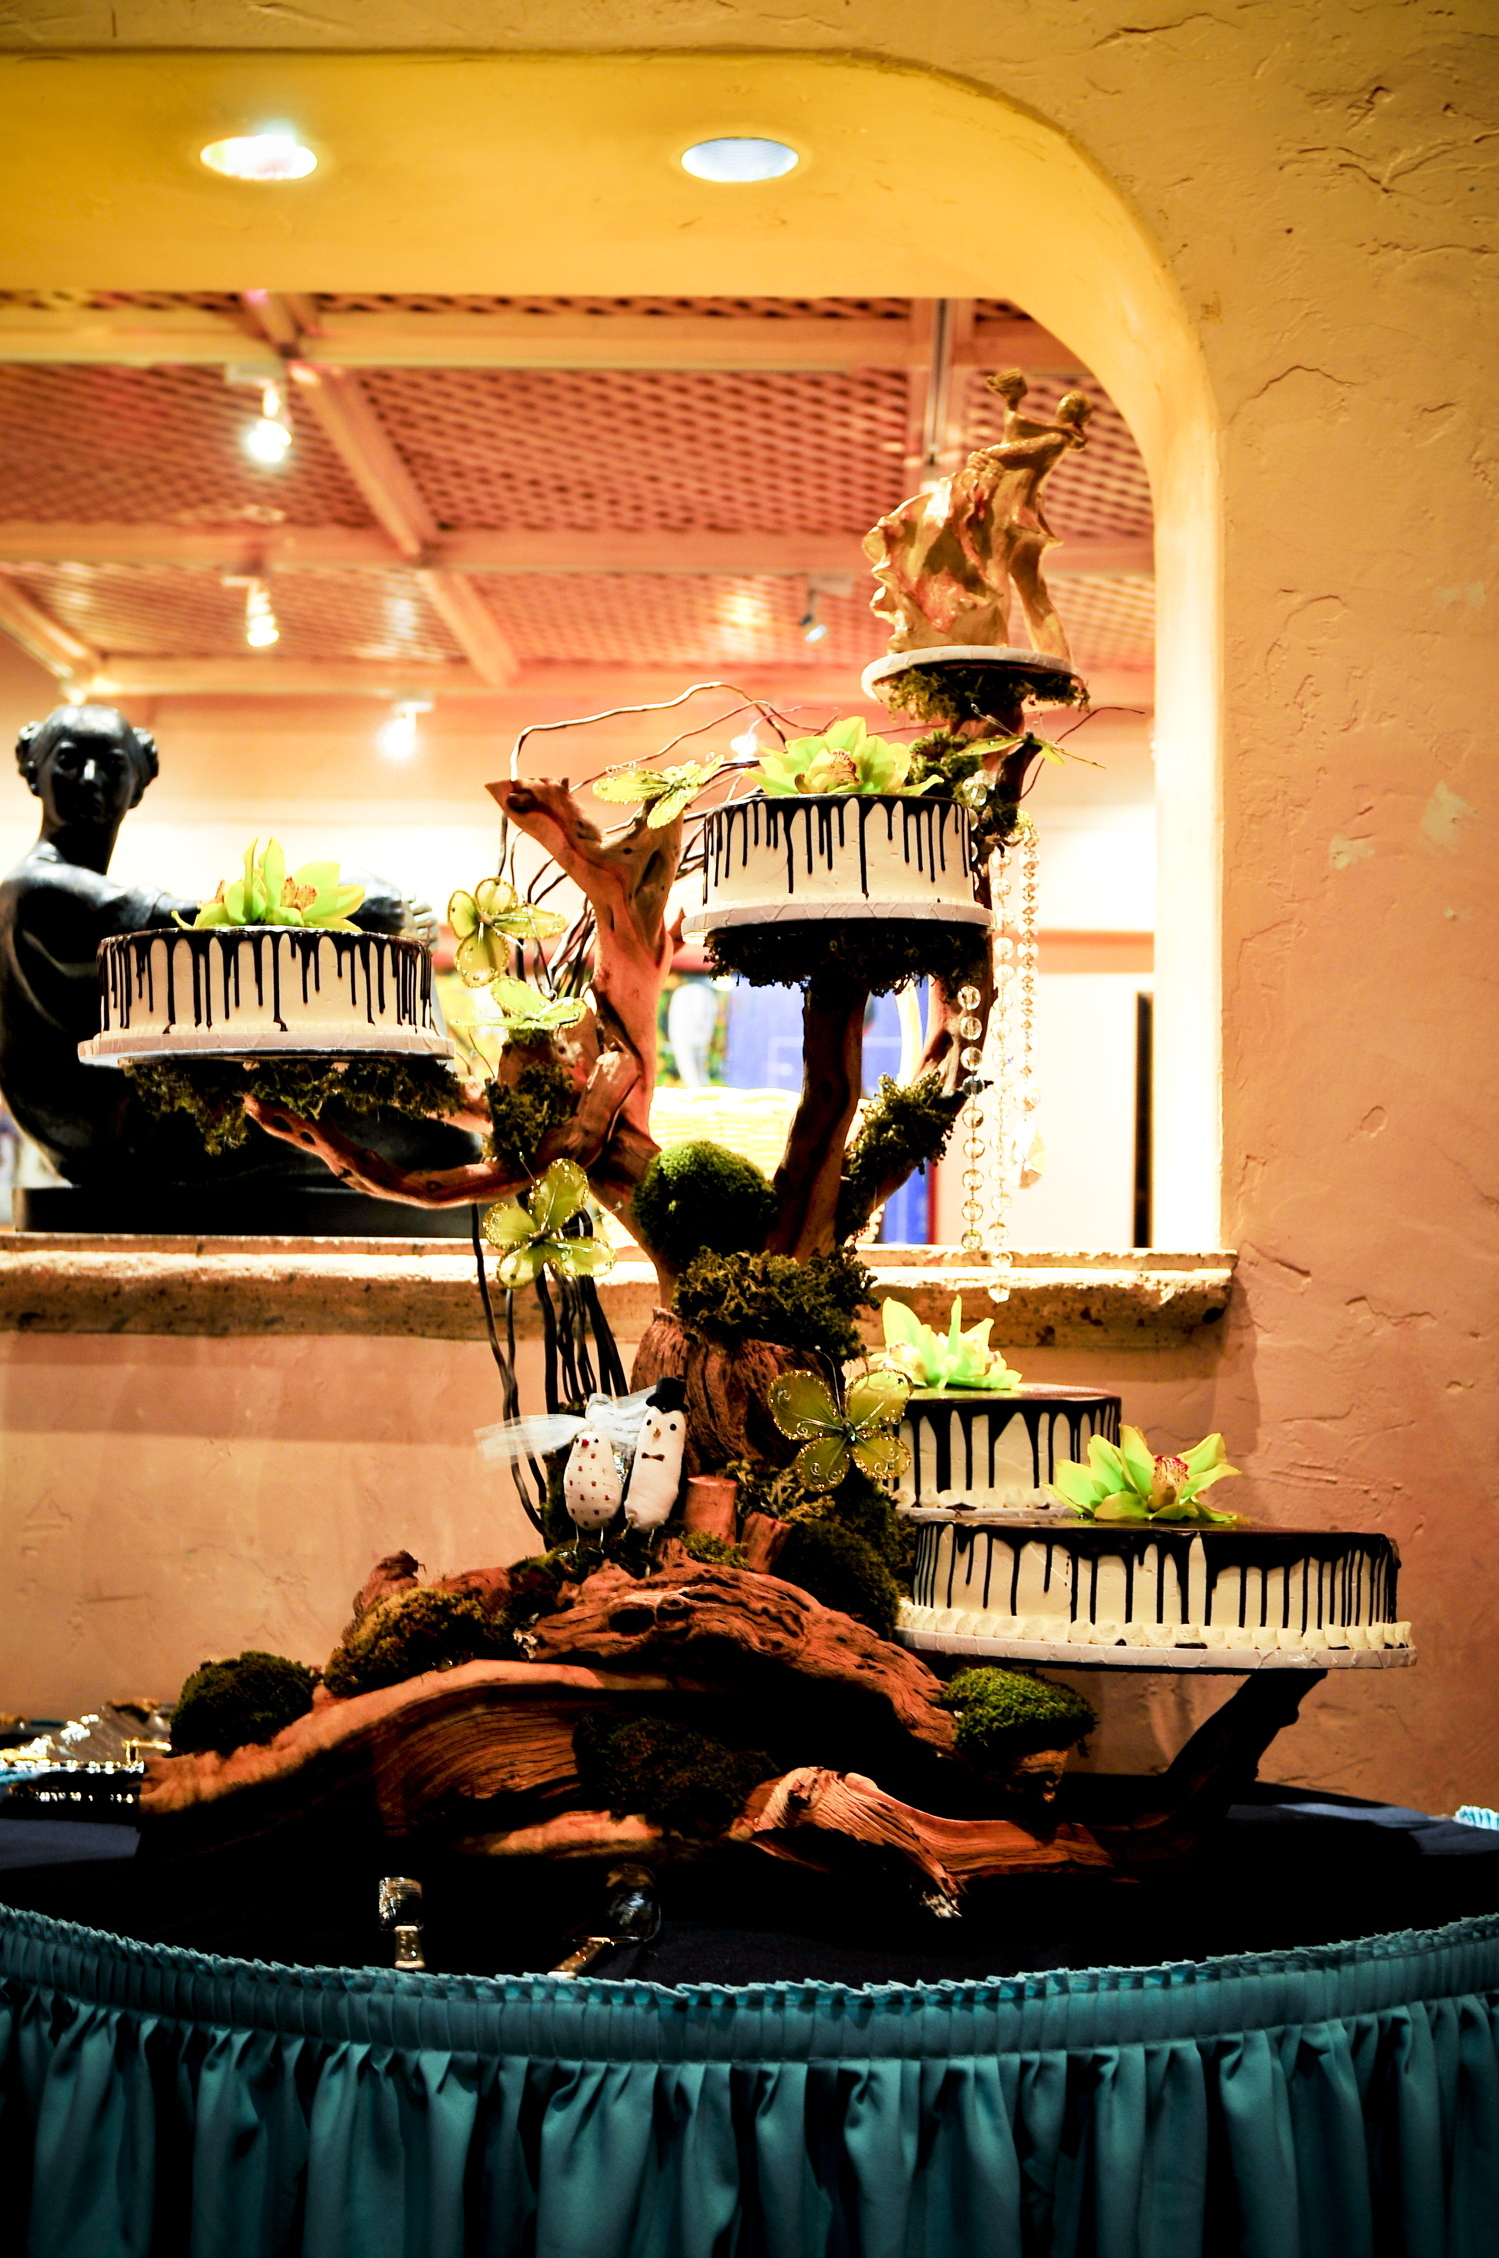 Cakes, green, brown, cake, Branches, Birds, Chocolate, Orchids, Manzanita